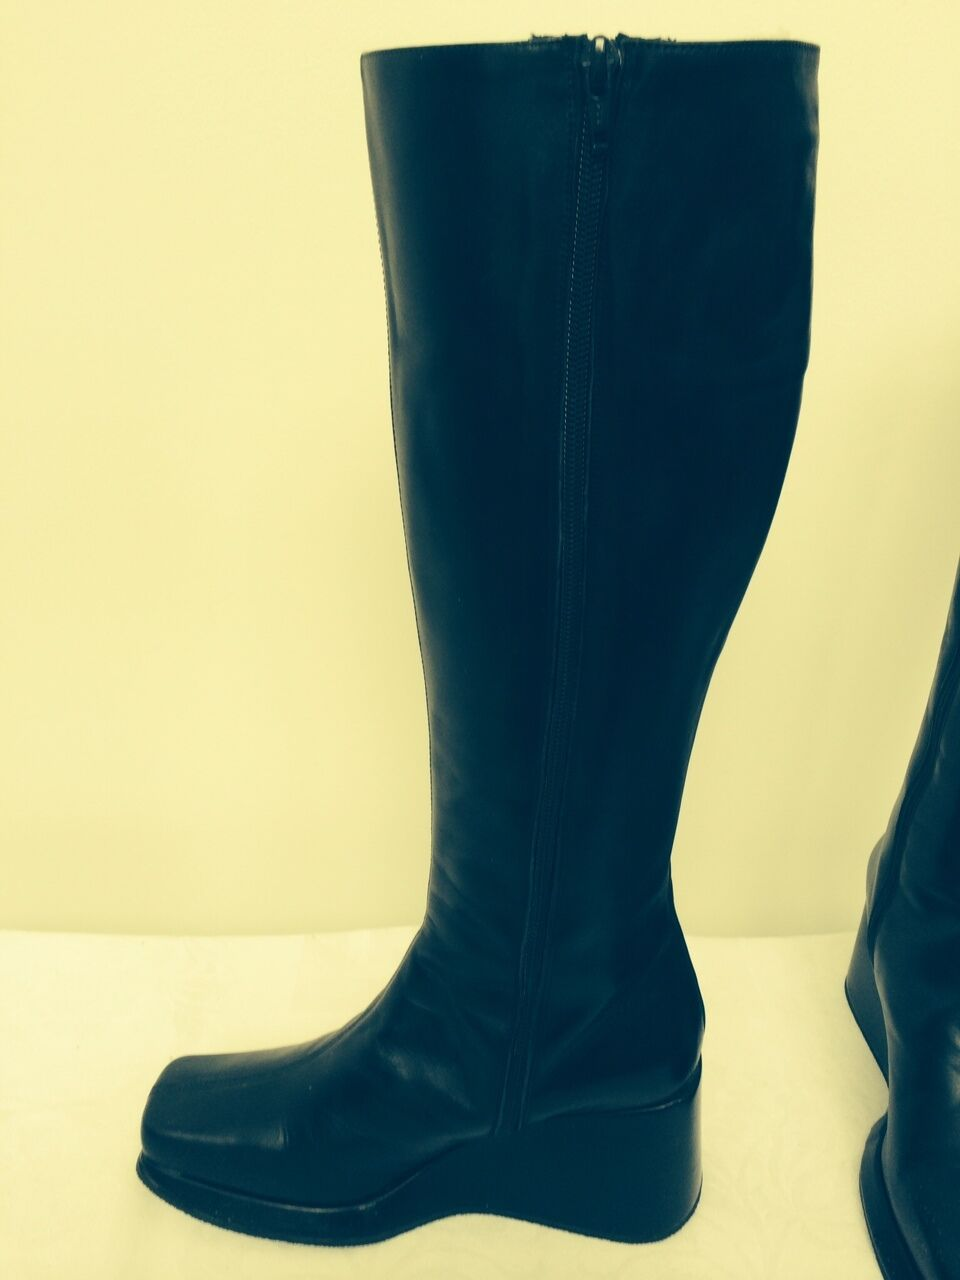 SALE NEW Kenneth Kenneth Kenneth Cole Black Leather Knee High  Boots Wedge Heel  7 1 2M e676de